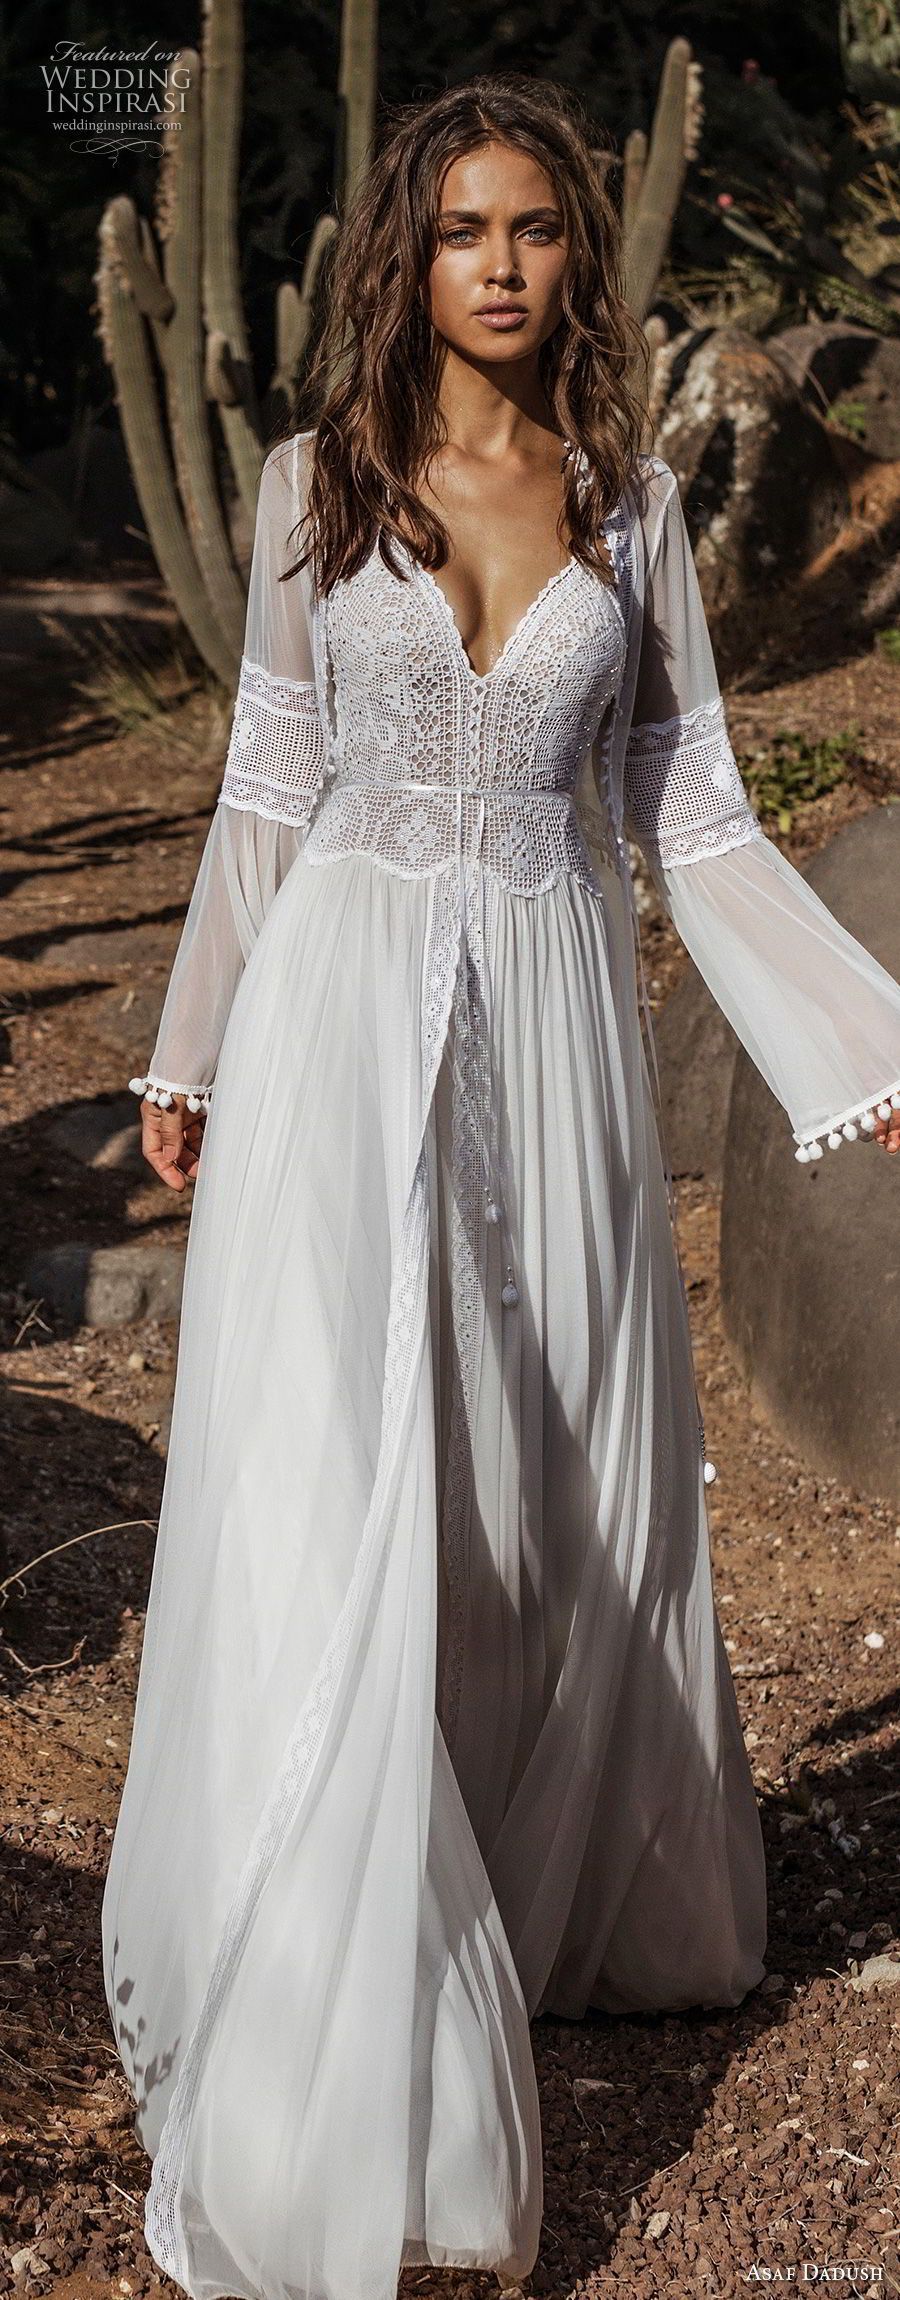 Wow love this boho inspired wedding dress stunning and stylish